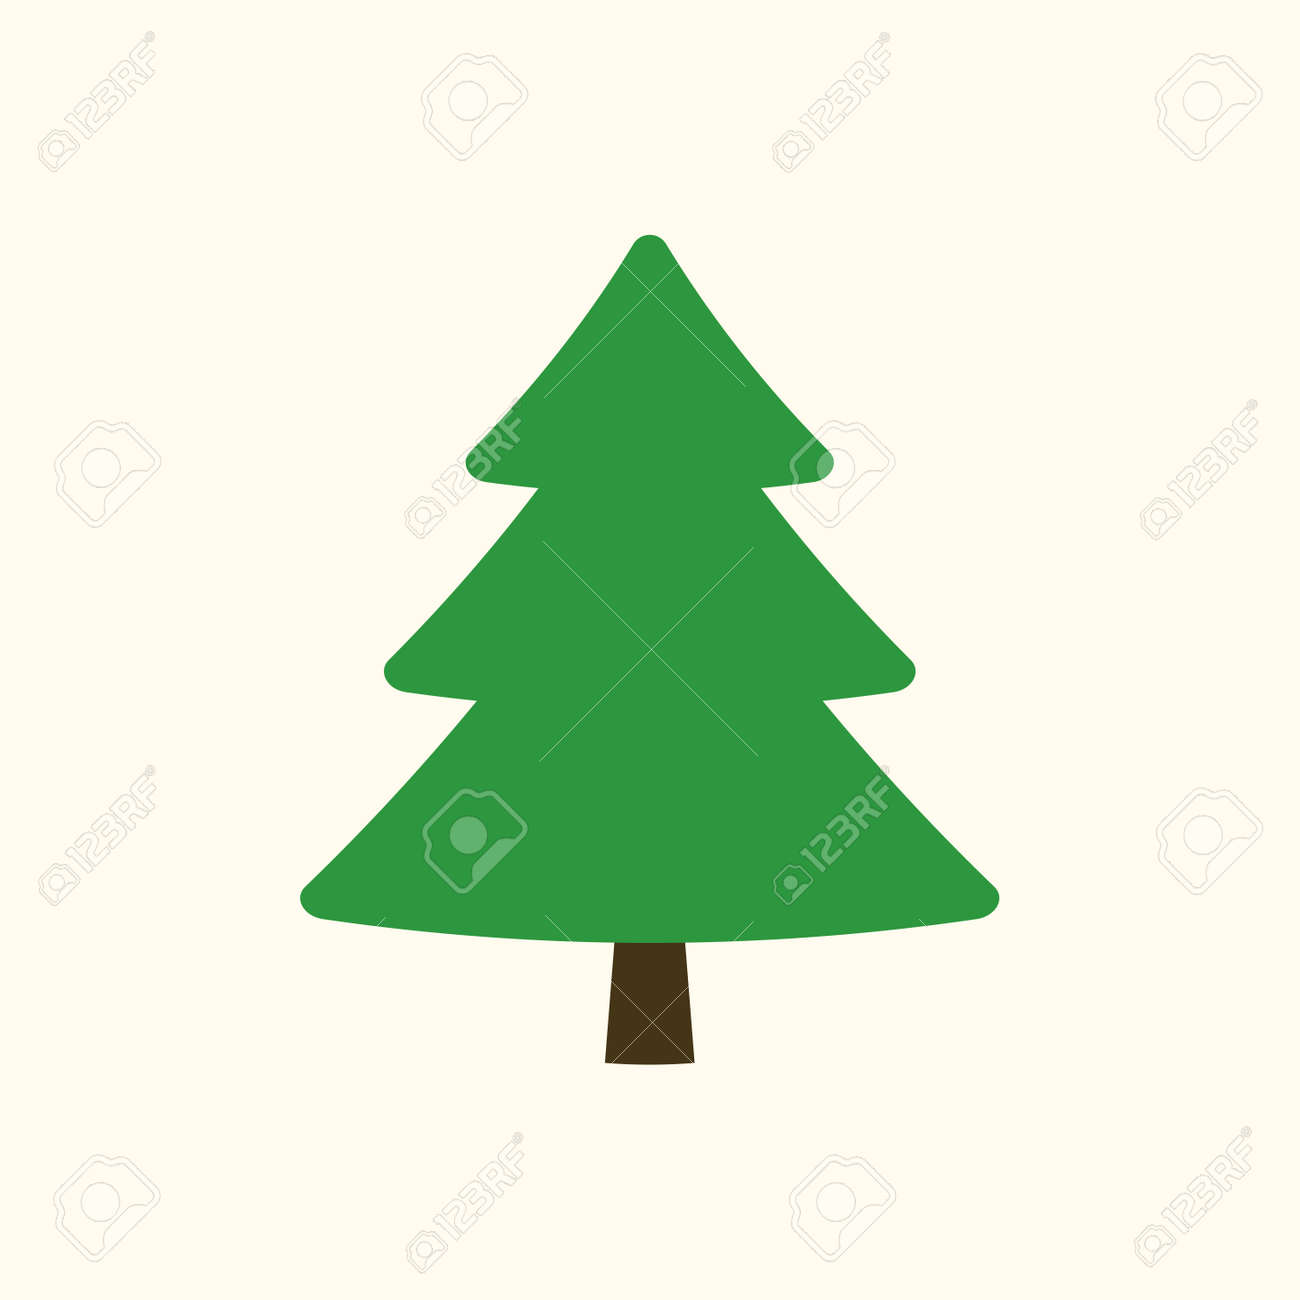 christmas tree sign simple cartoon icon green template silhouette isolated on white background